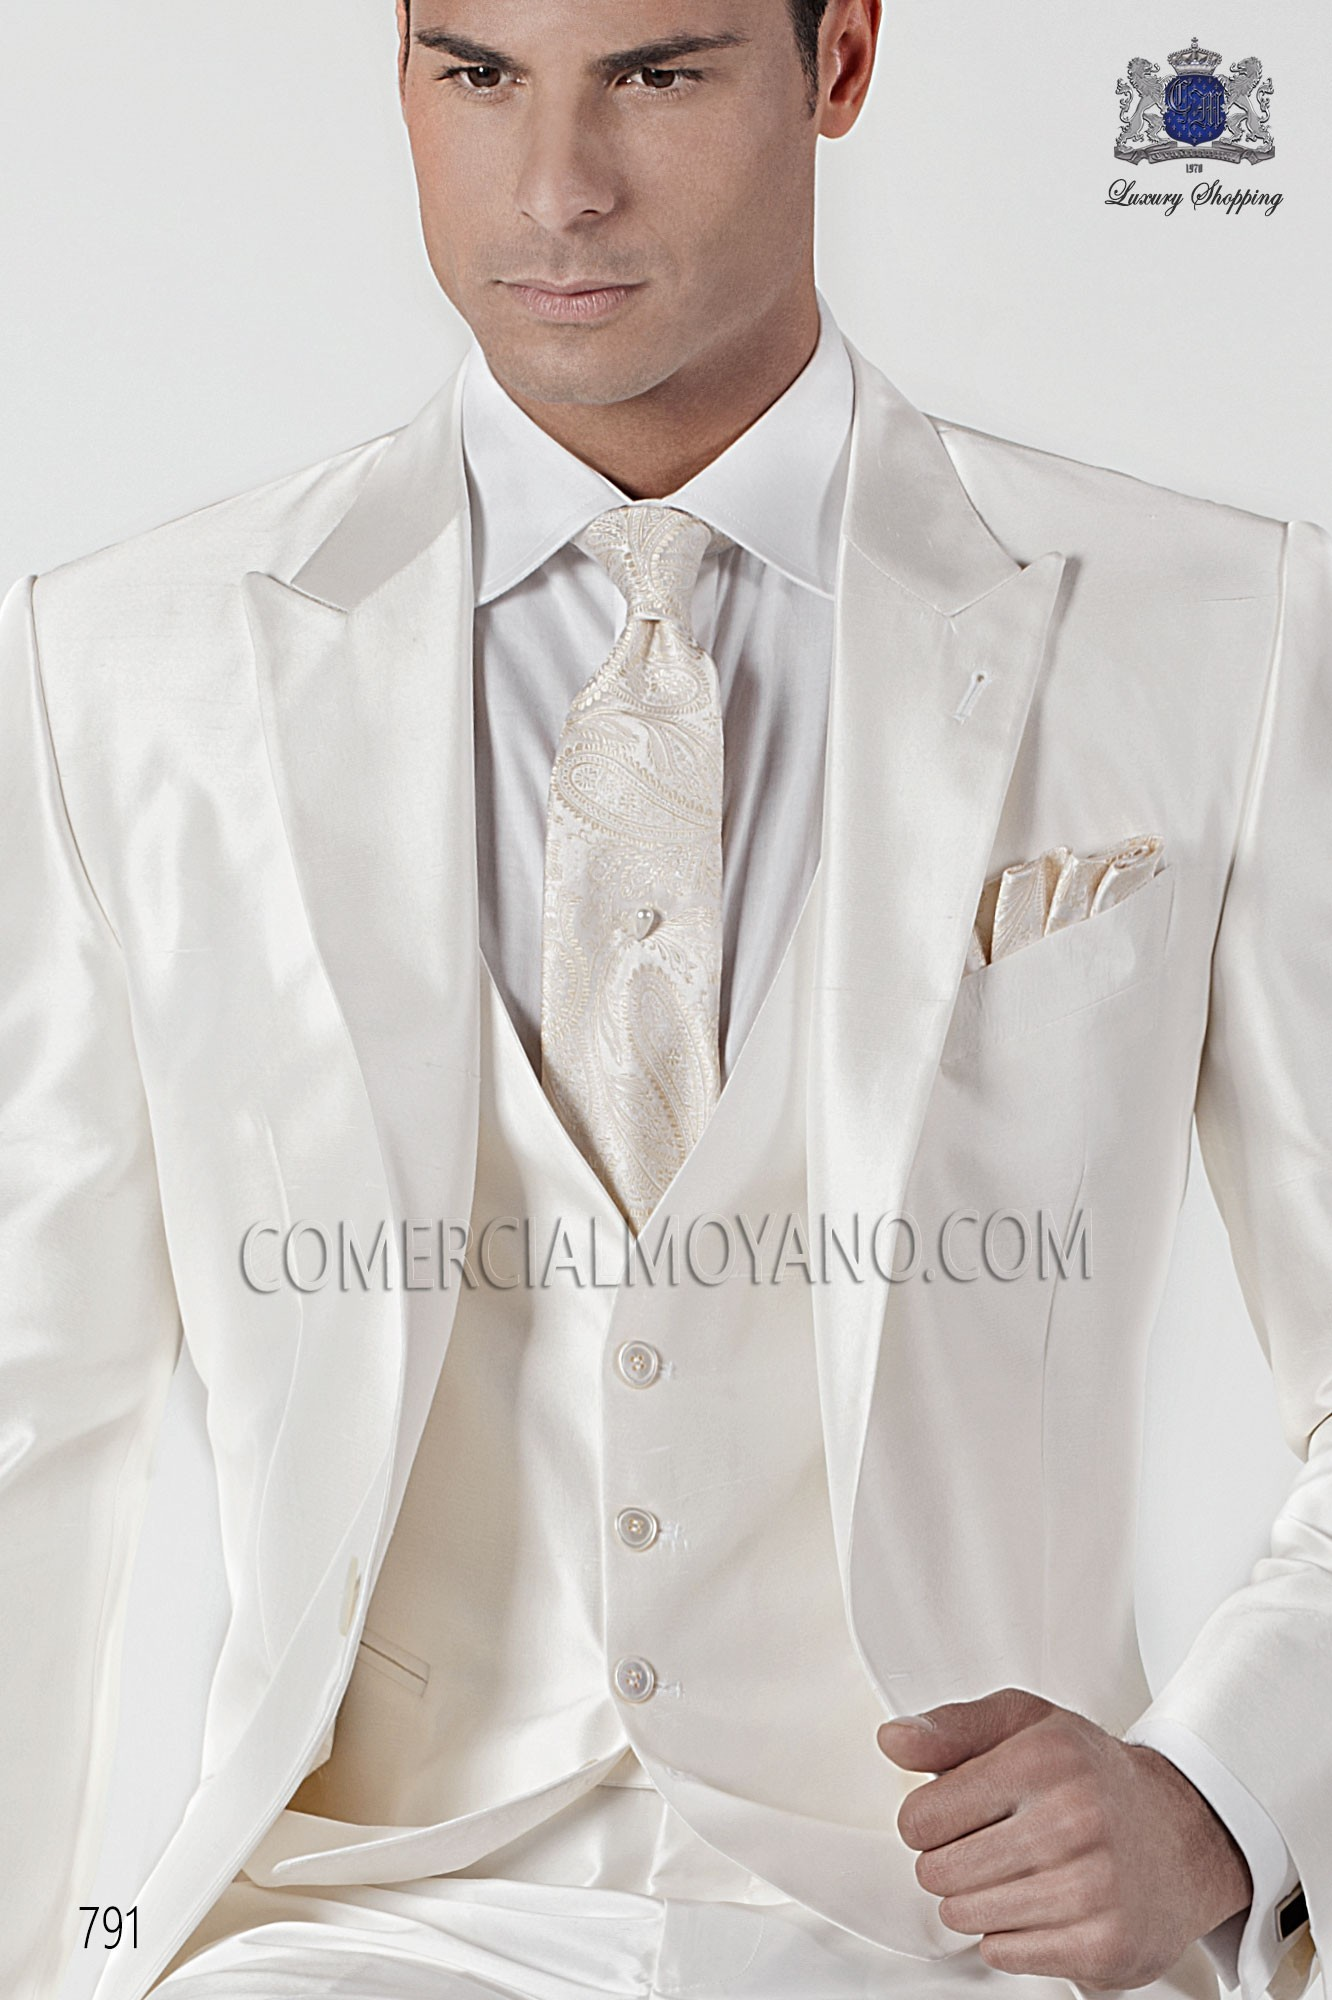 Hipster white men wedding suit, model: 791 Ottavio Nuccio Gala ...